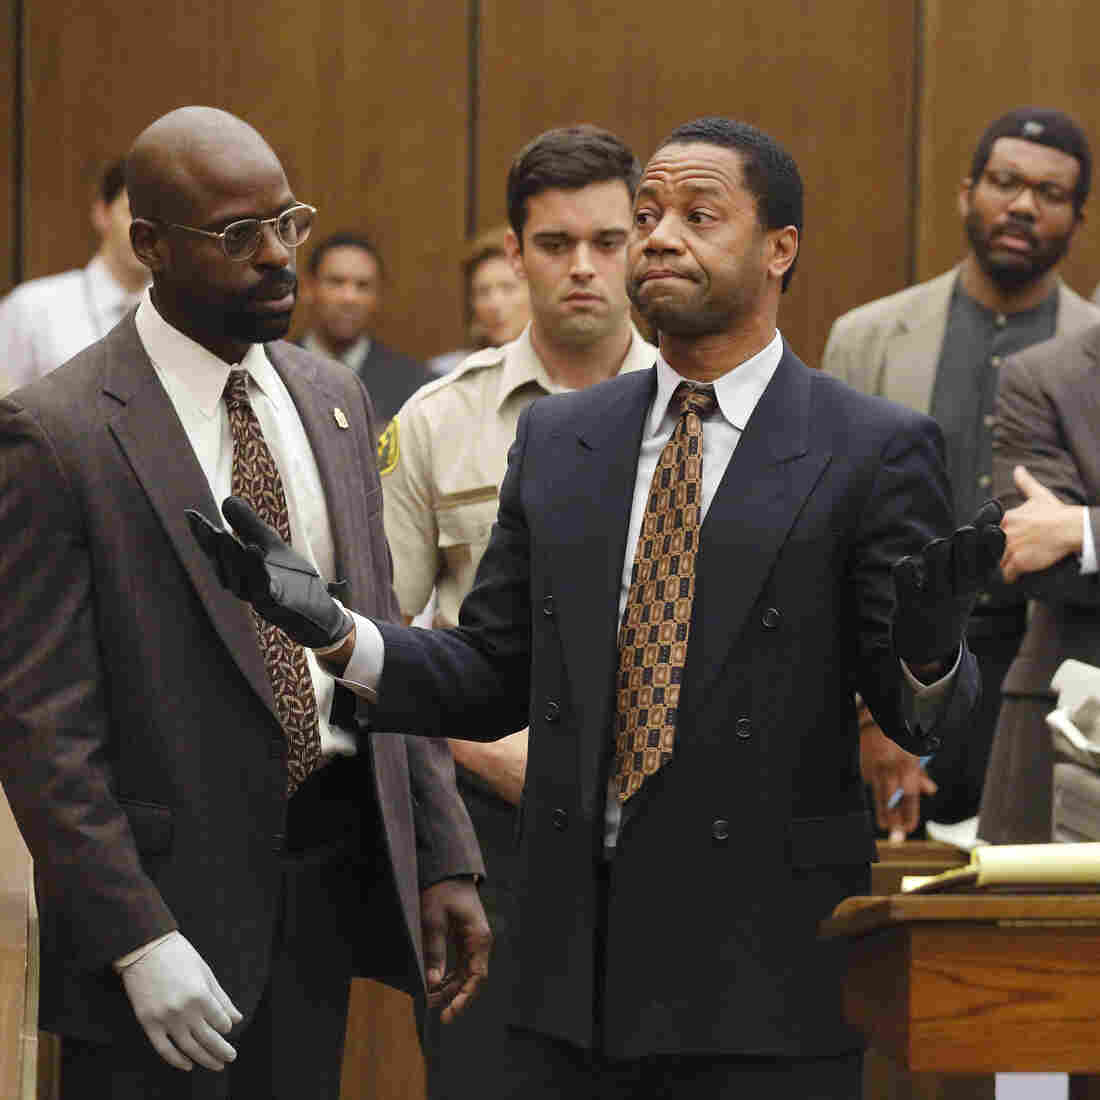 'The People Vs. O.J. Simpson' Gets To The Gloves